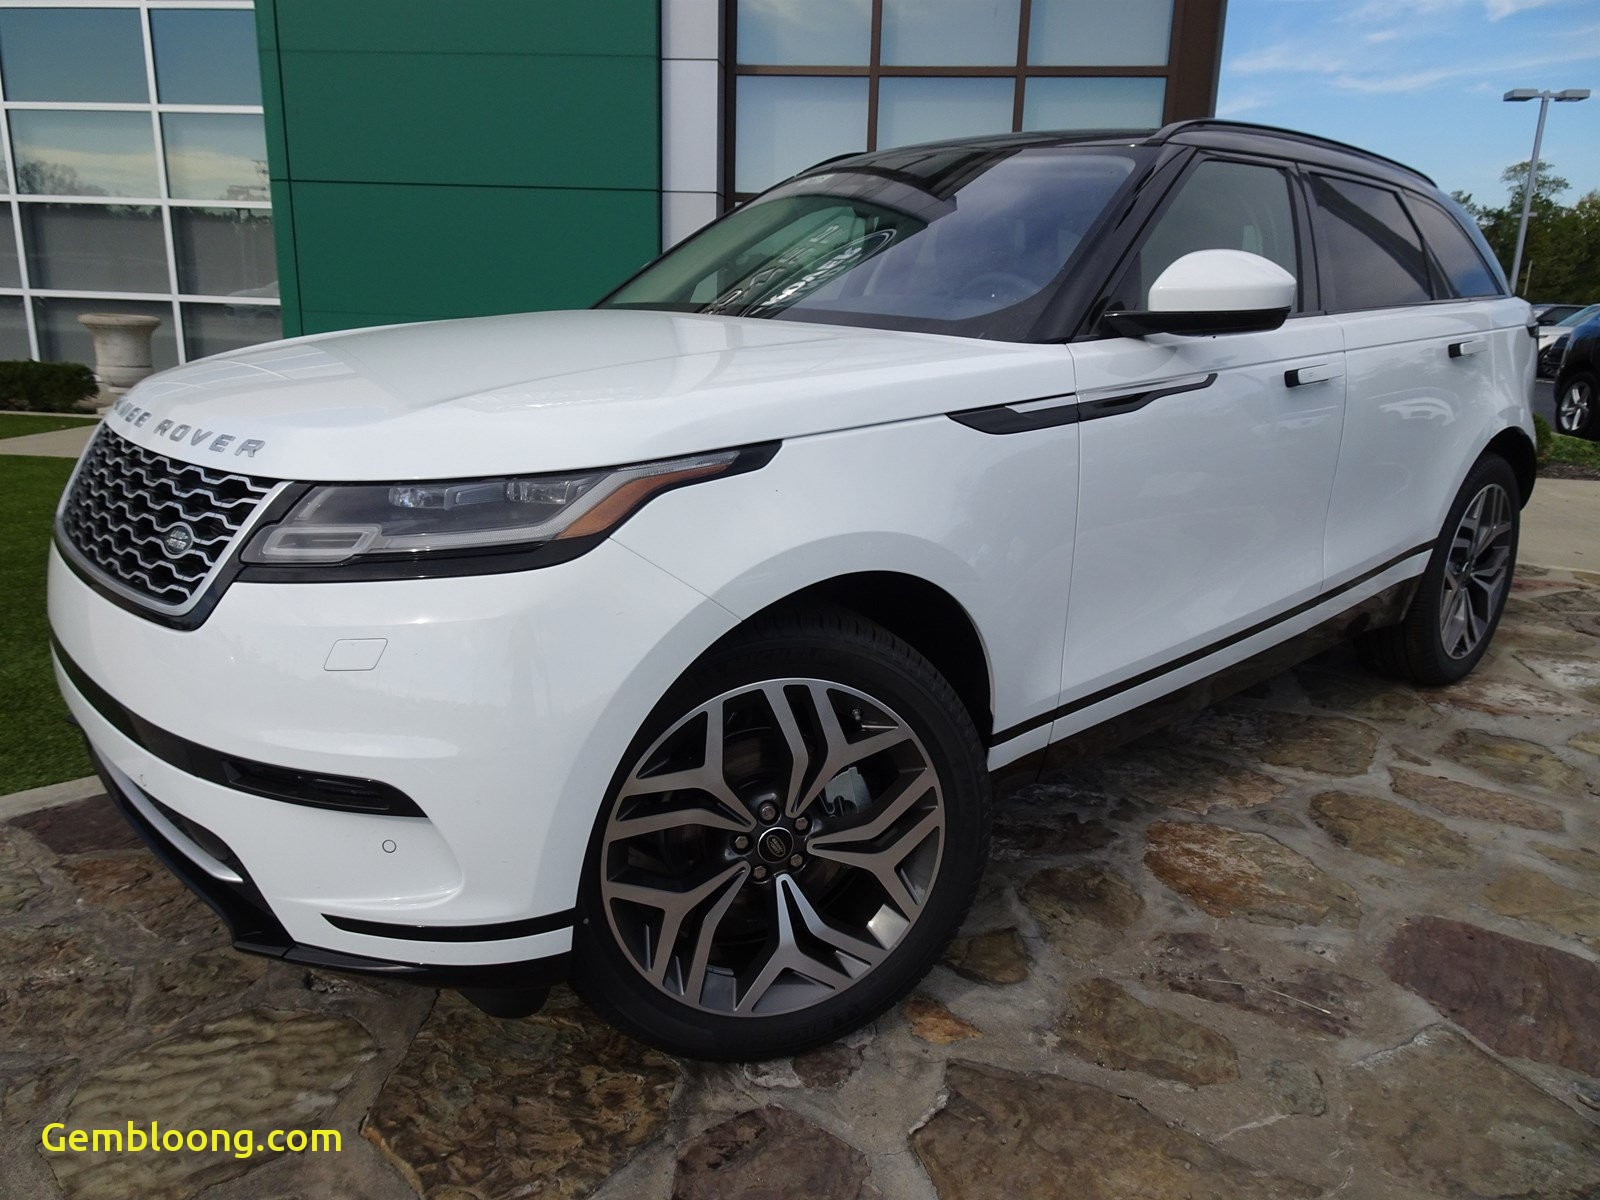 Range Rover Velar for Sale Luxury New 2020 Land Rover Range Rover Velar S with Navigation & 4wd